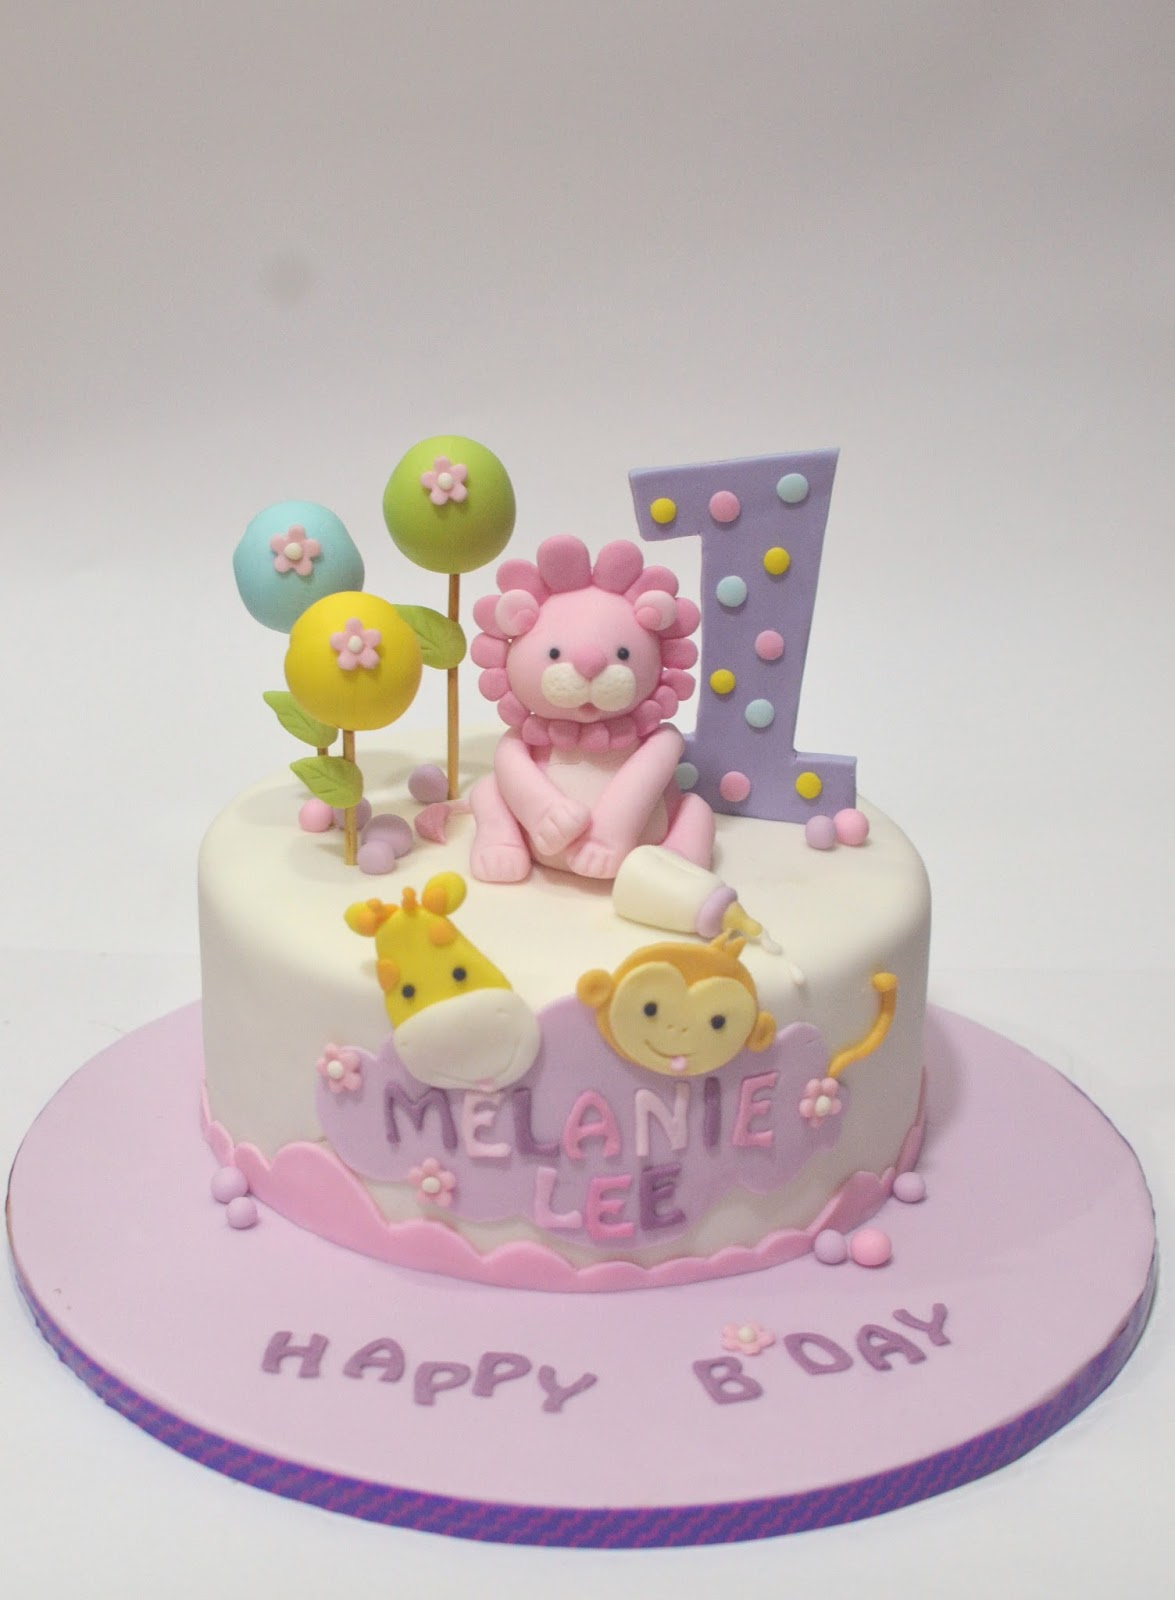 Cake Design For One Year Old Birthday : Mom And Daughter Cakes